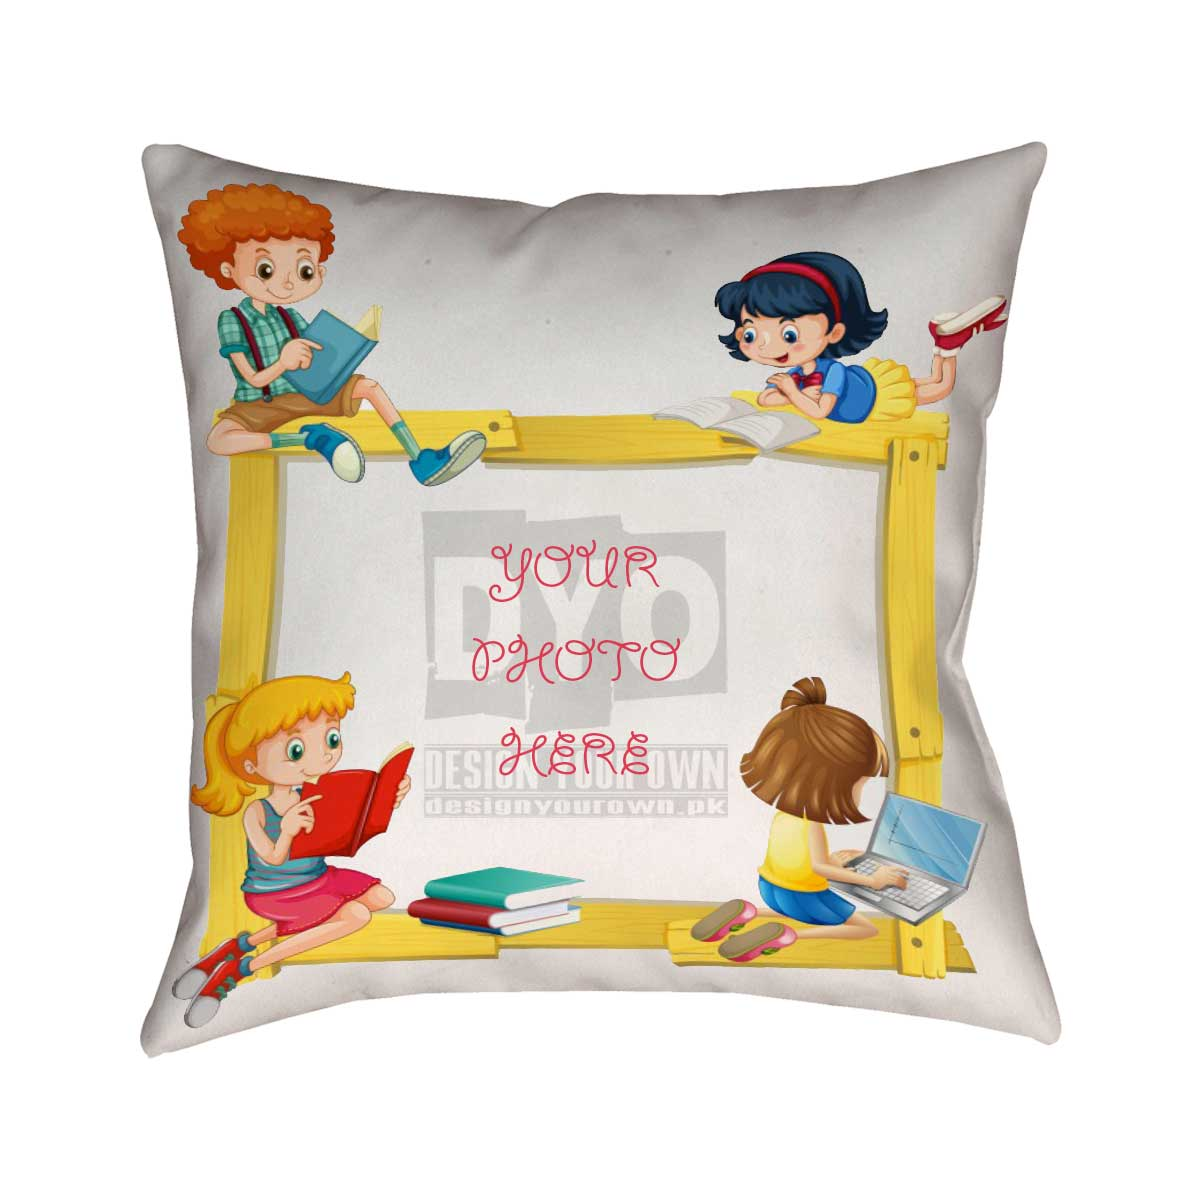 Study Time Cushion For Kids | Study Time Cushion - Design Your Own